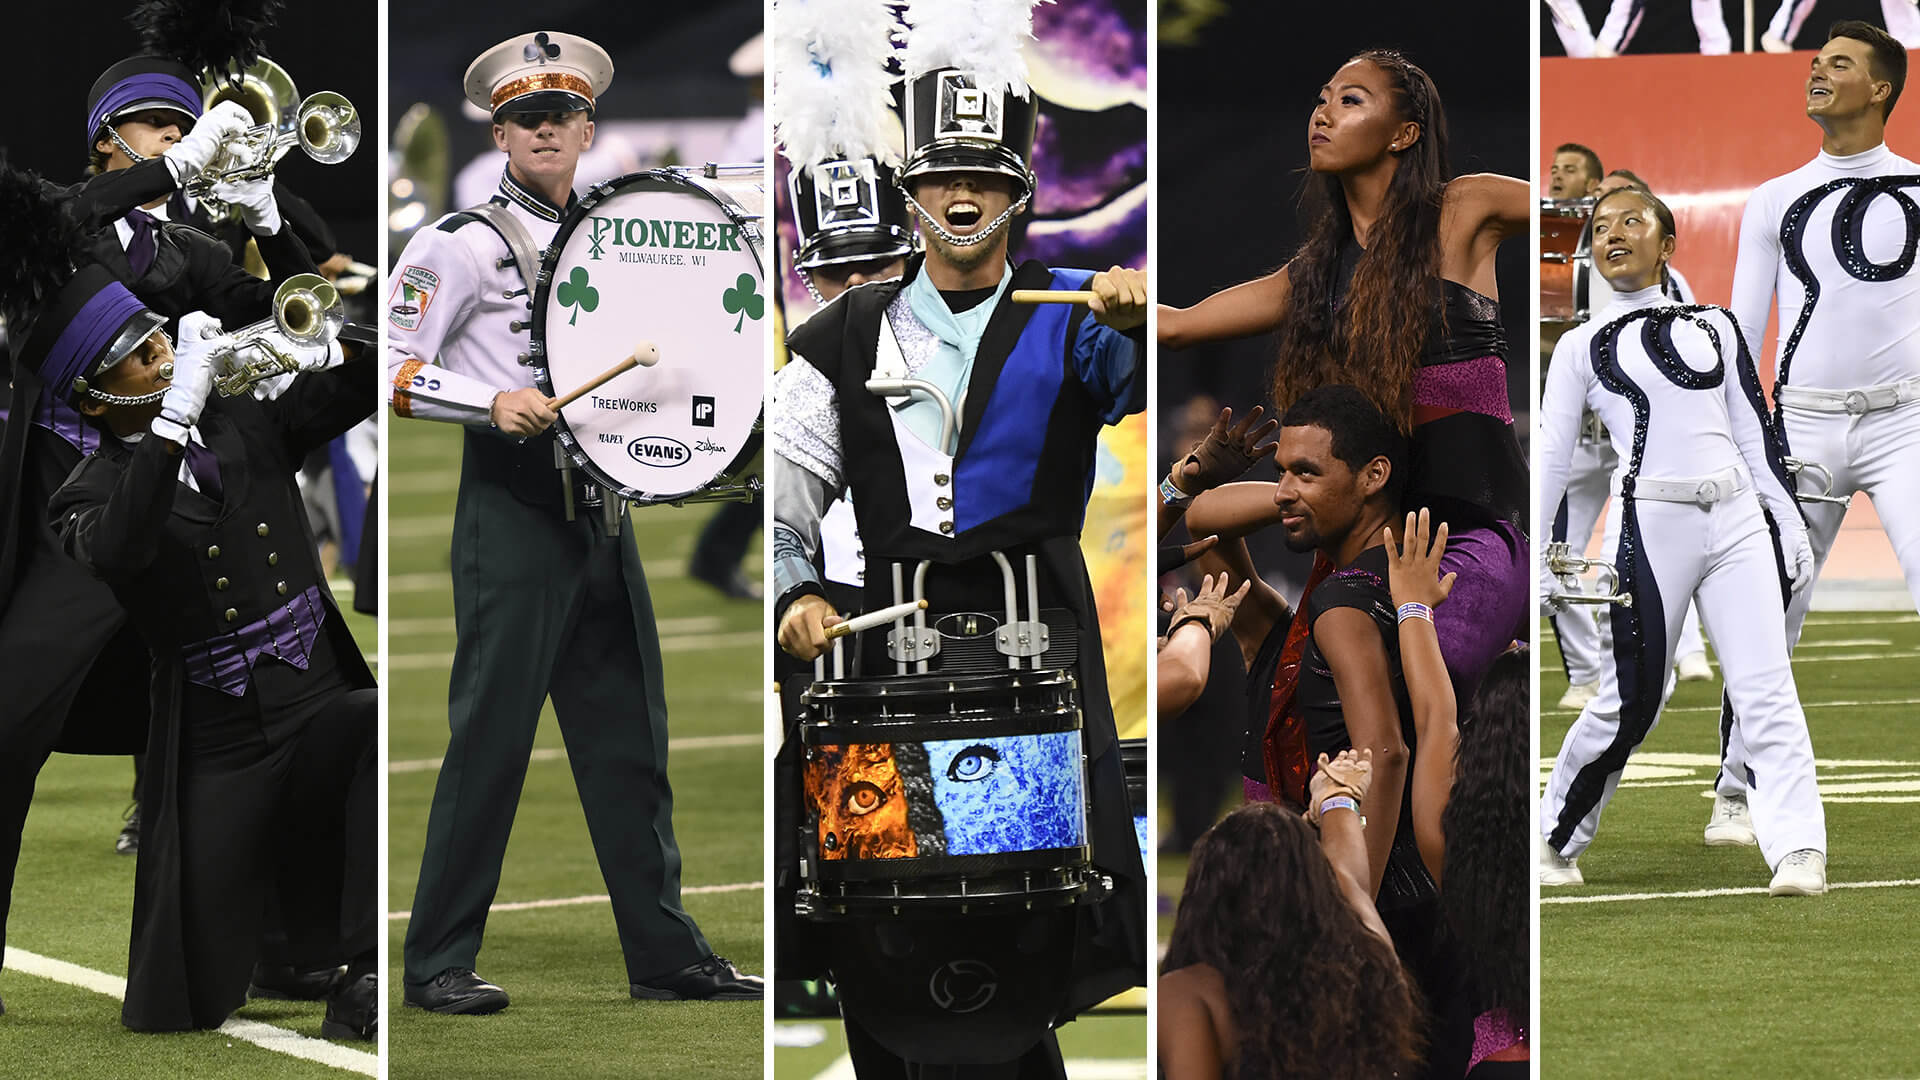 DCI On-Demand library expanded with 2016 World Championship performances